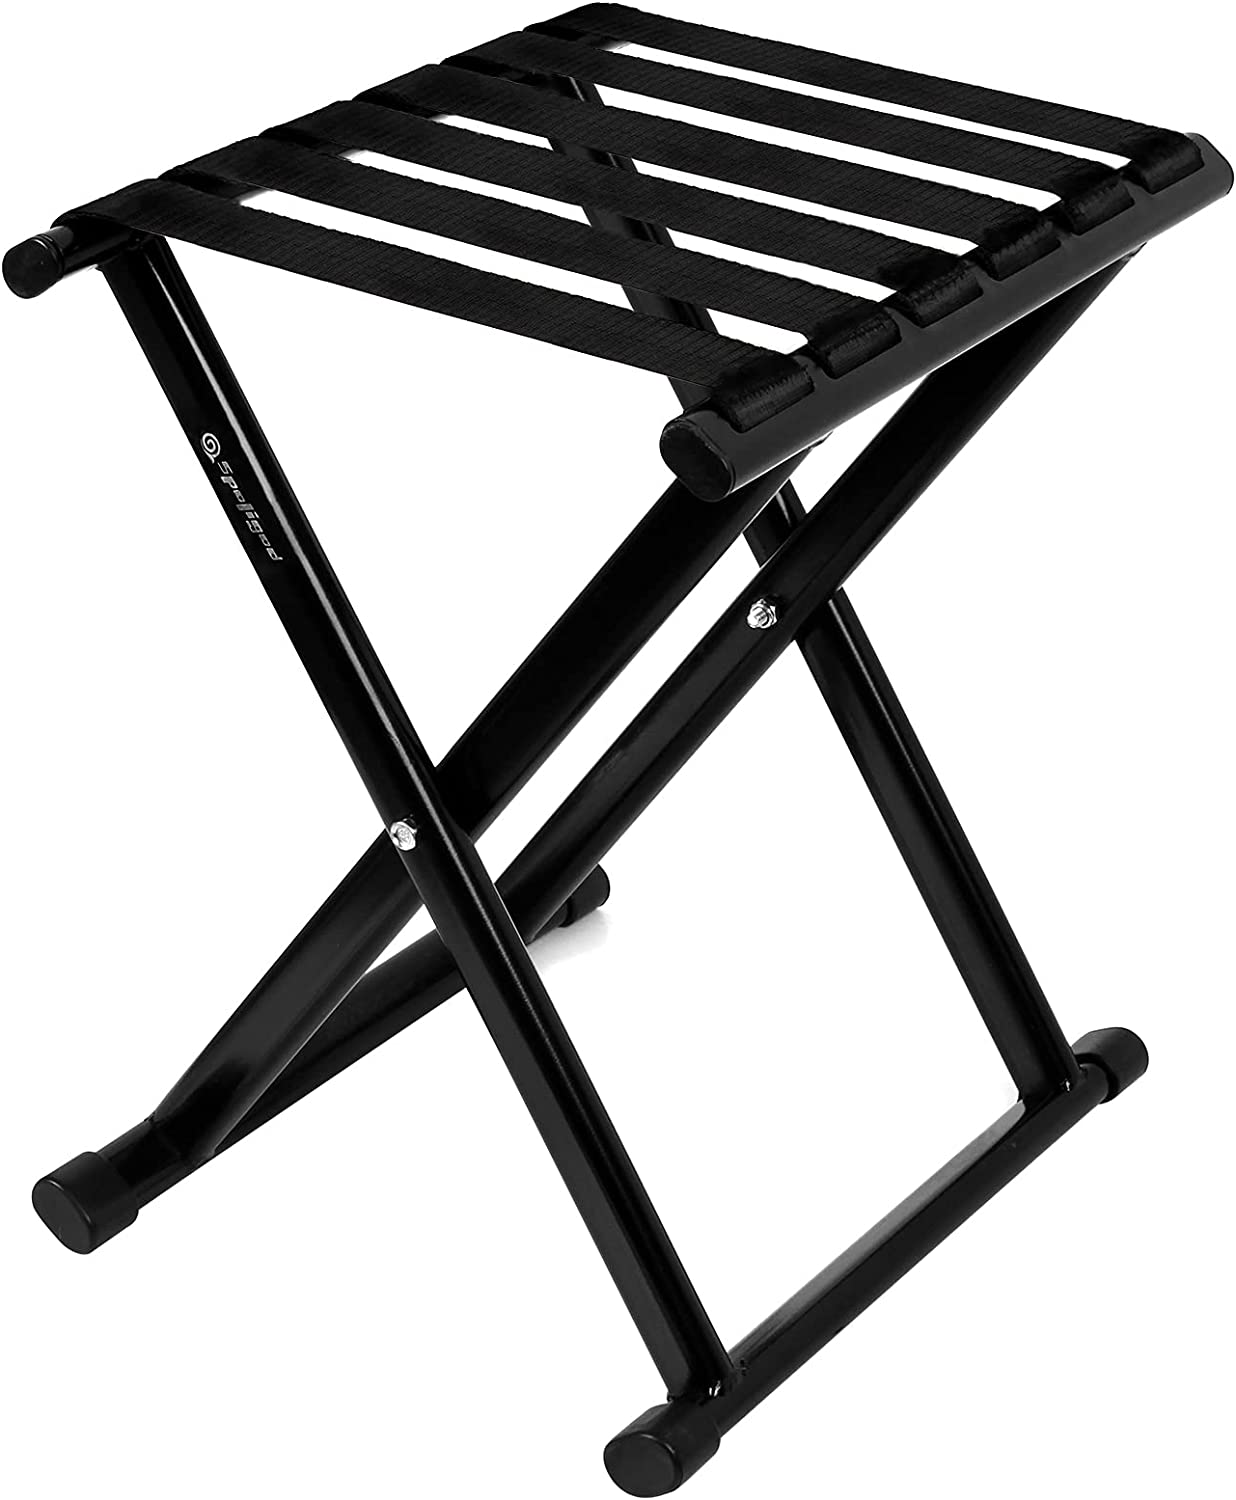 Camping Stool, Heavy-Duty Folding Stool, Portable Outdoor Small Folding Chair, Hold Up to 600lbs , Camp Stool Suitable for Camping, Hiking, Fishing (M, Black)